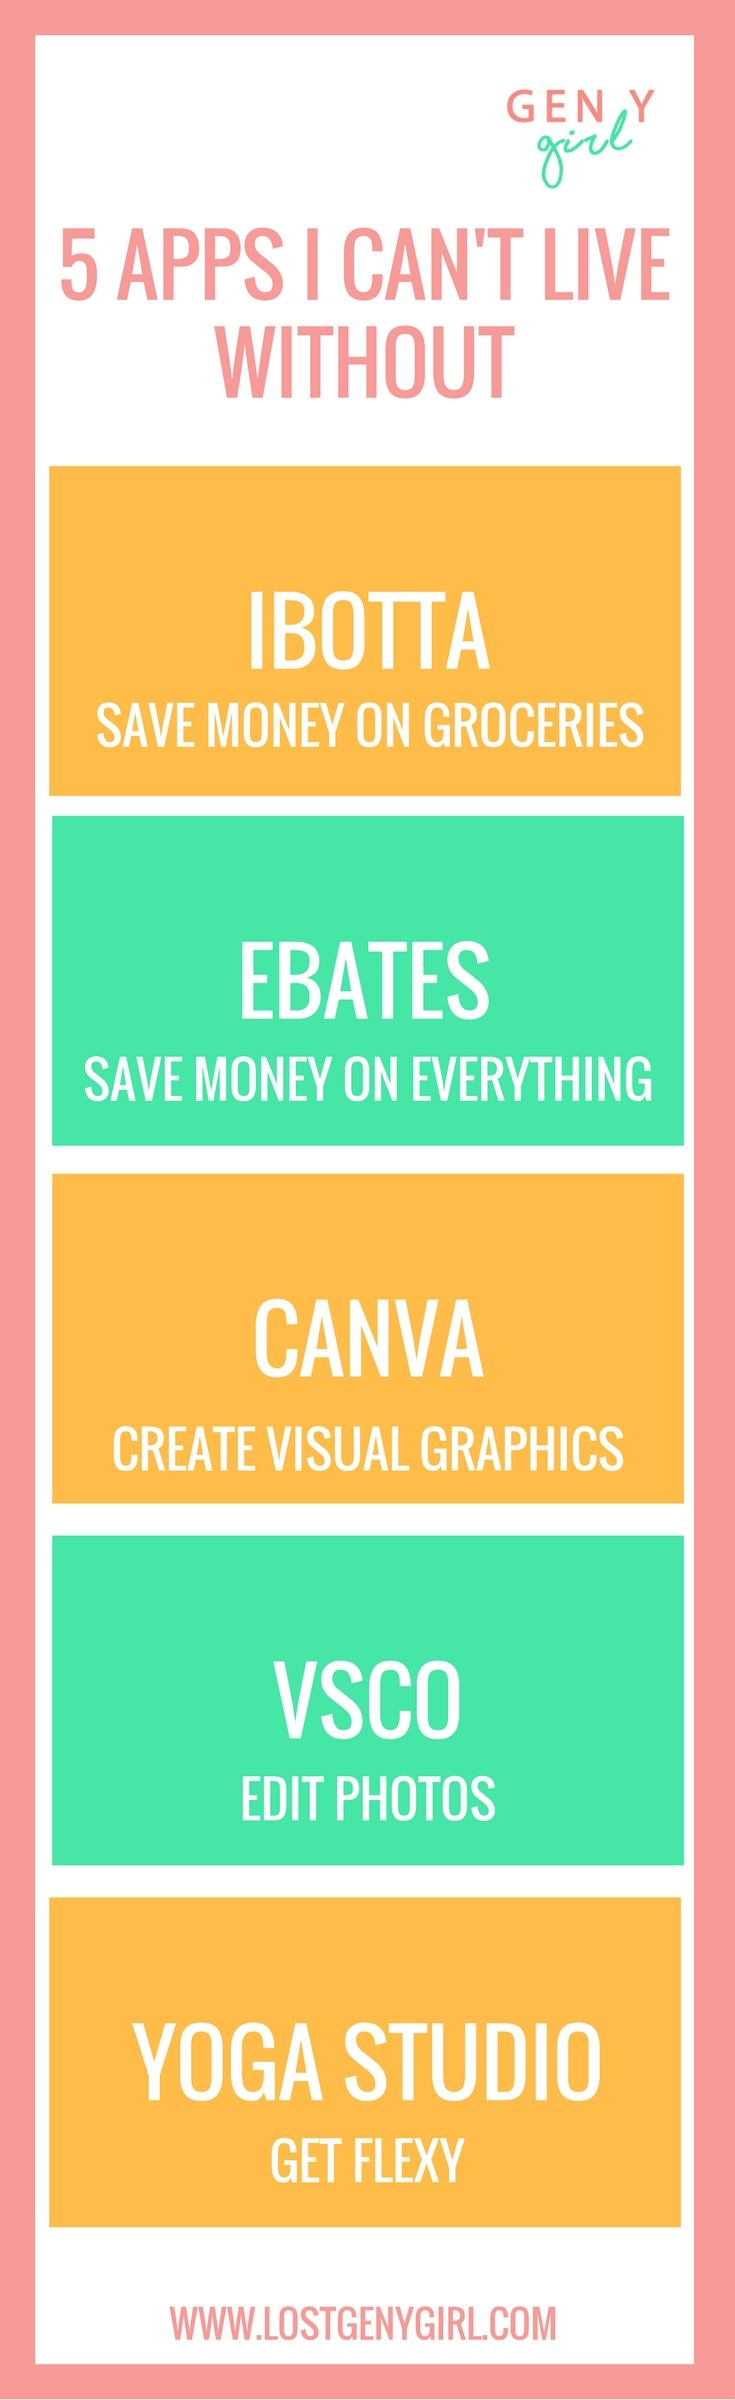 My all time favorite apps that'll help you save money, create visual graphics, edit photos, and get some yoga in!